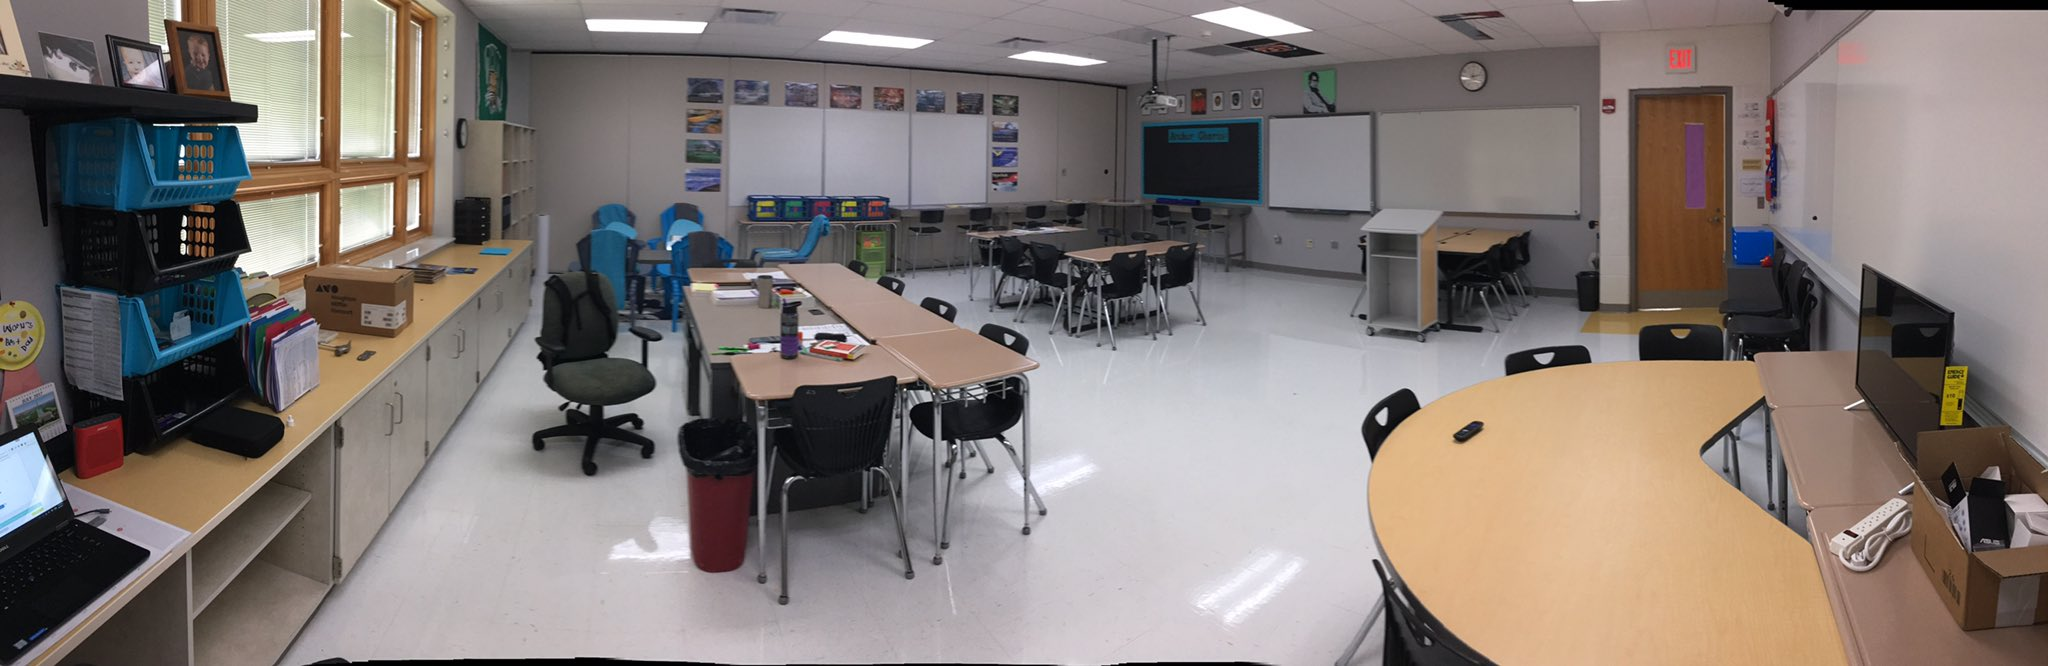 @hayhurst3 I am making a full transition to blended learning for my 8G Eng class this year.  This #edchat is just what I need! #G2Great https://t.co/69ShYCT2j2